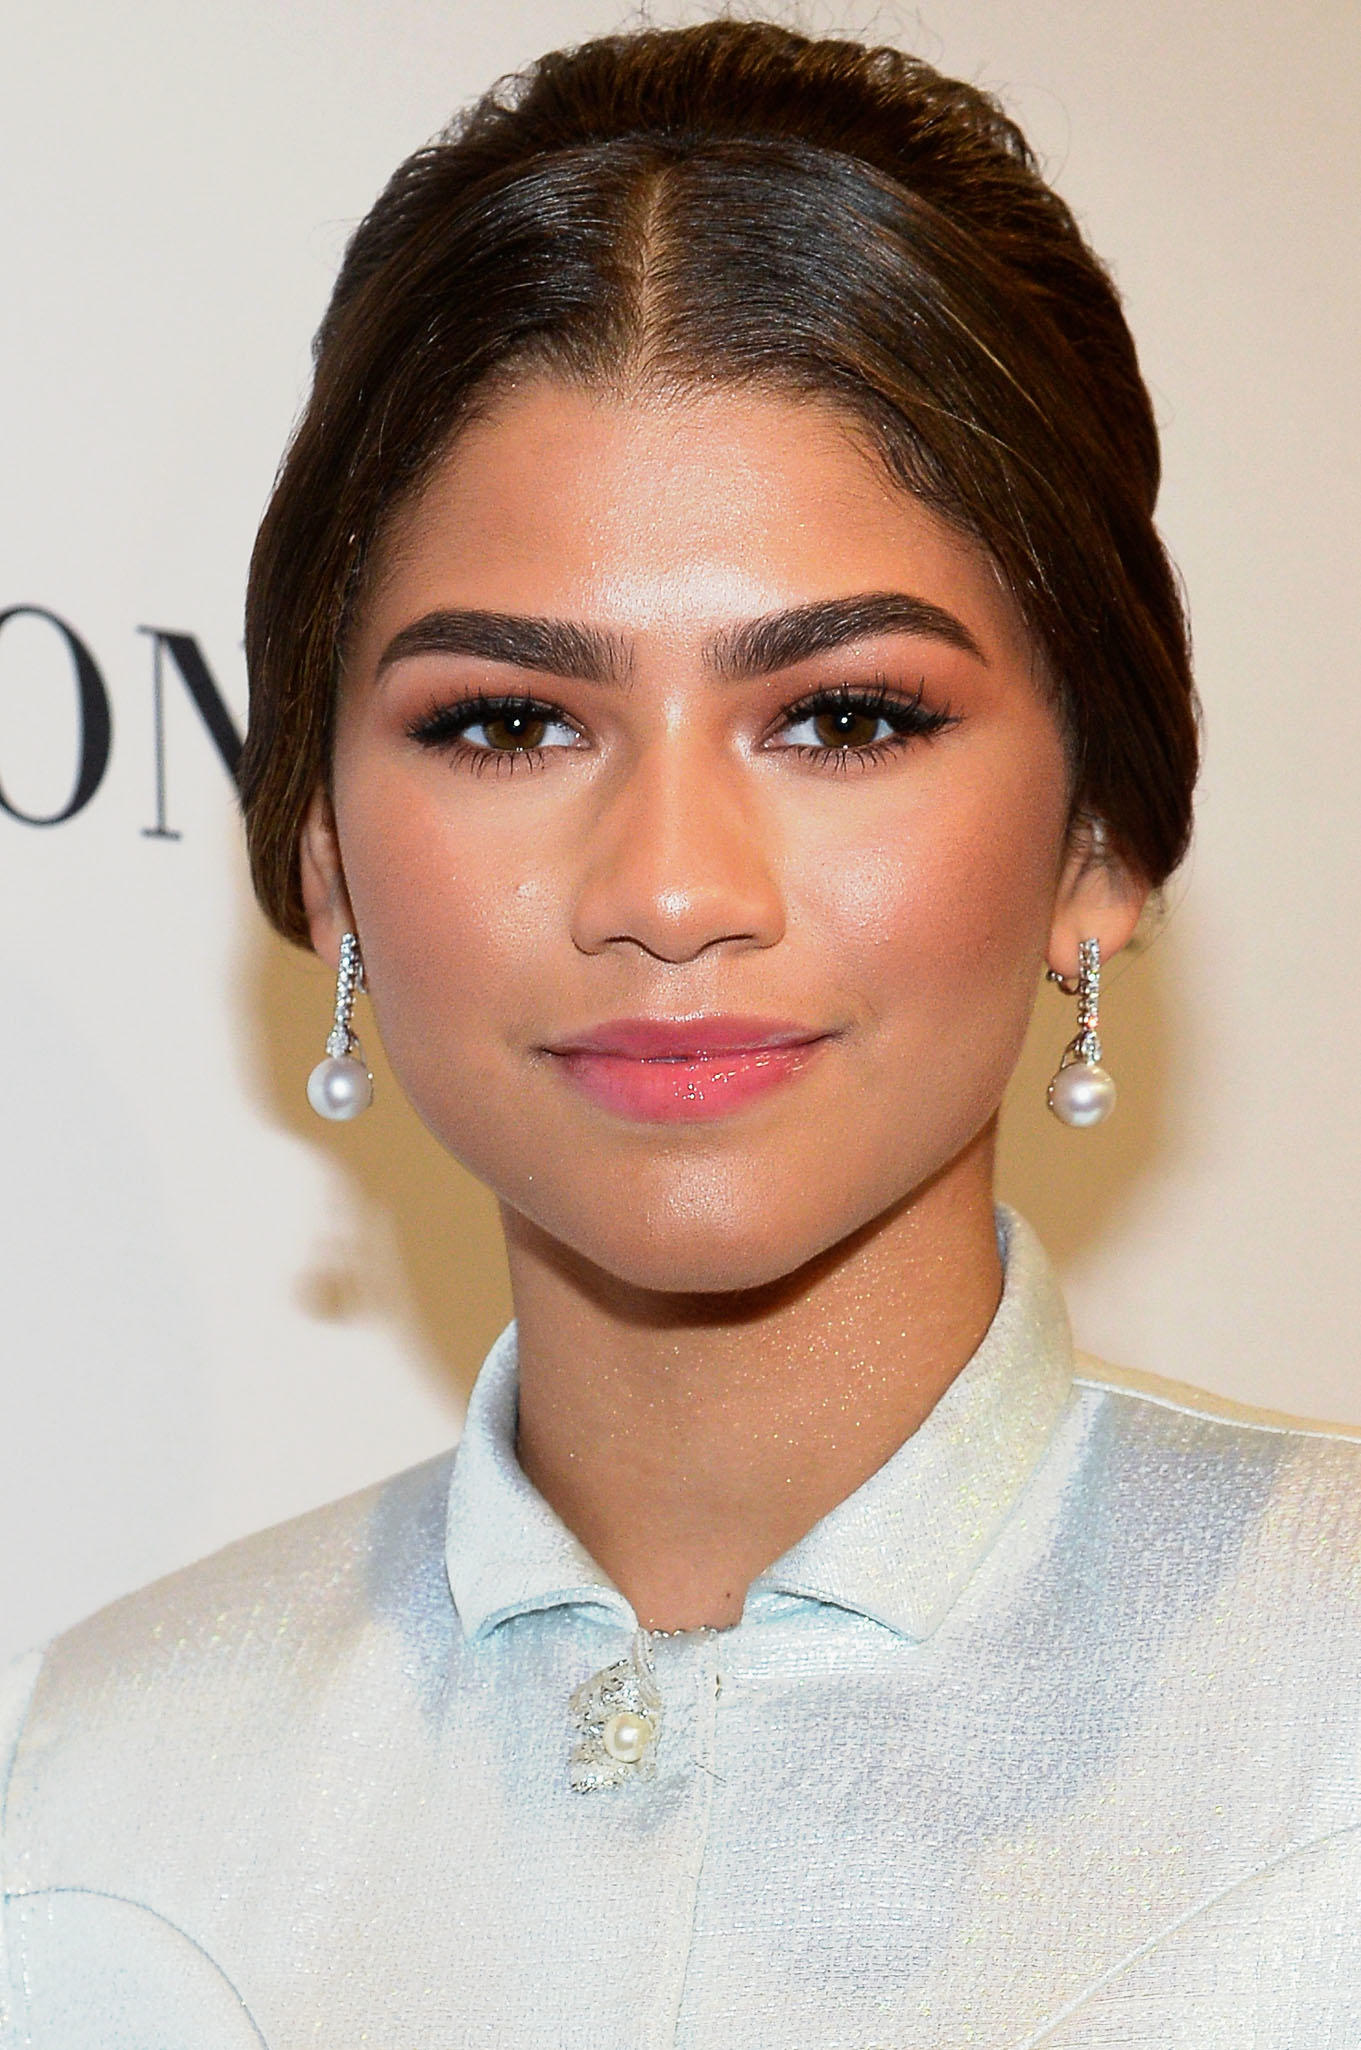 Zendaya at Glamour Woman Of The Year 2016 in Los Angeles.